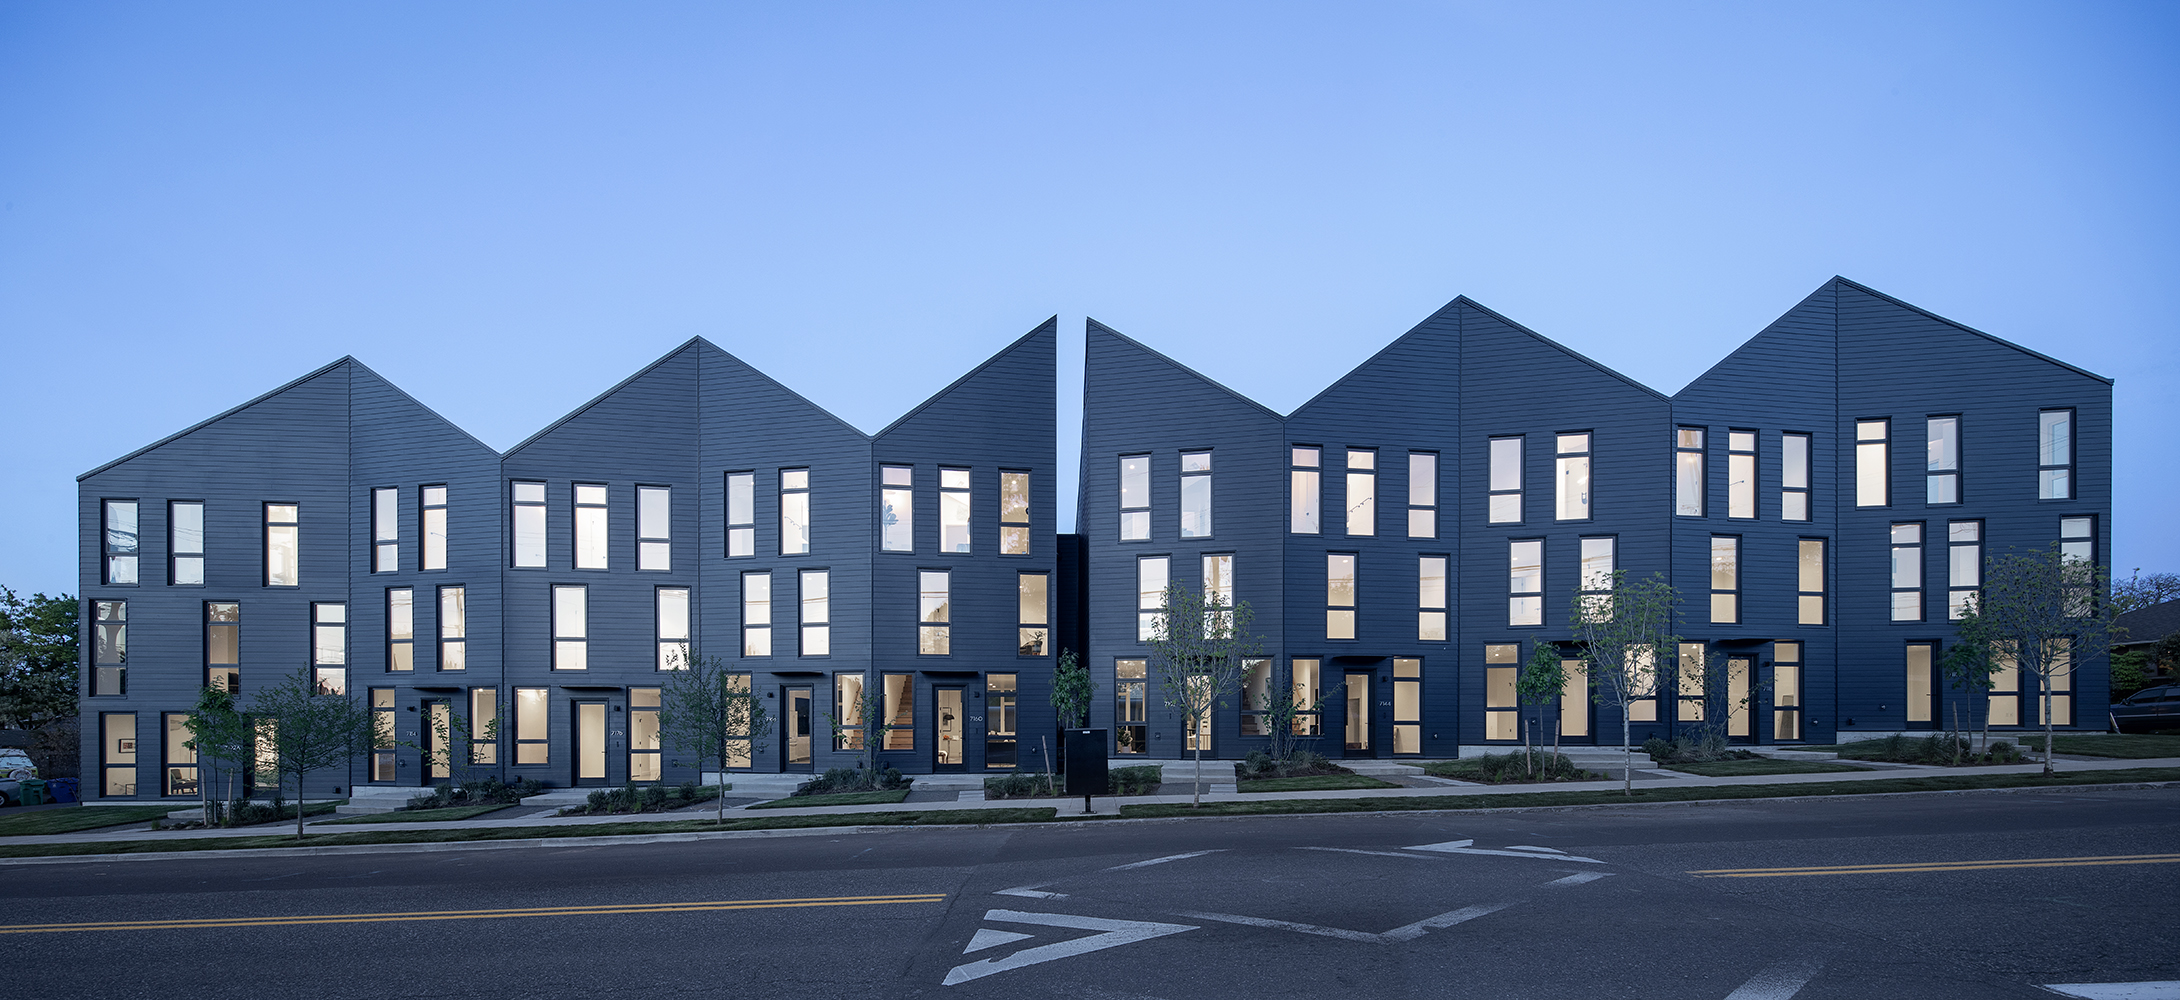 You Care What We Think: Origami (Uptown location) – Minneapolis, MN | 1000x2180